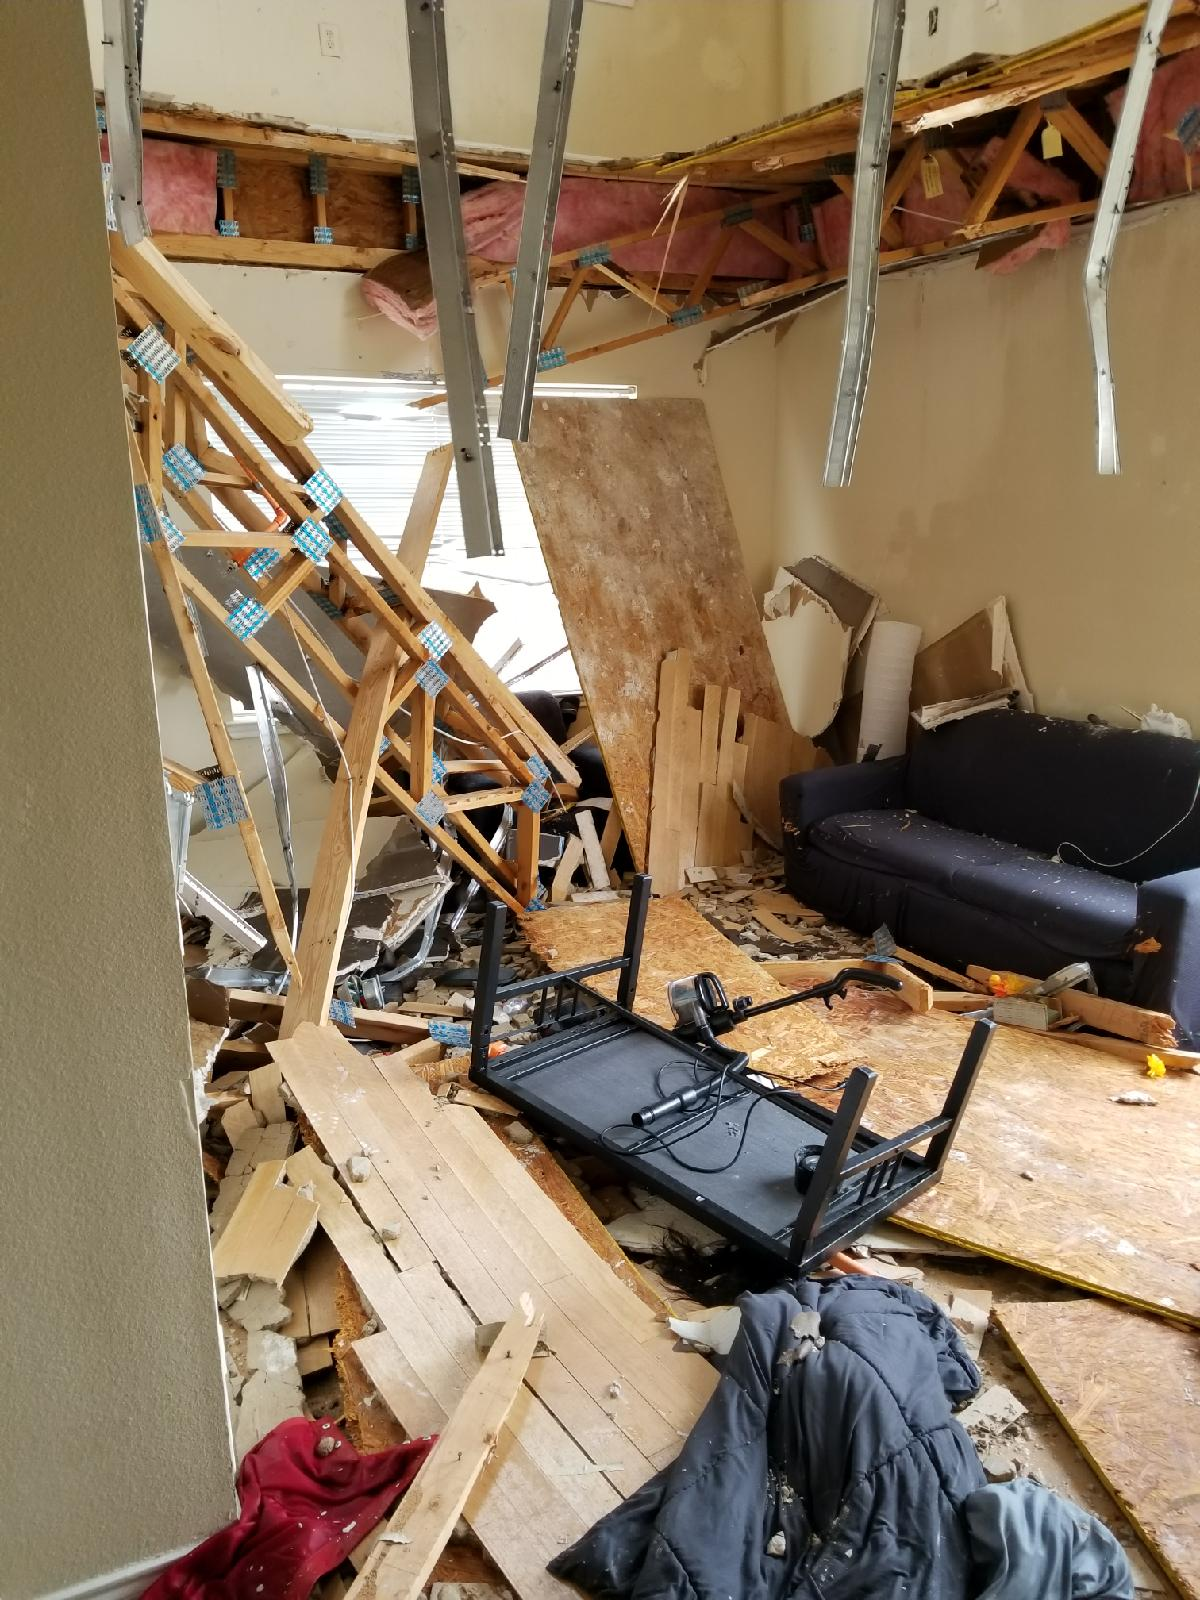 Video Dramatic Moment Unt Apartment Floor Collapses